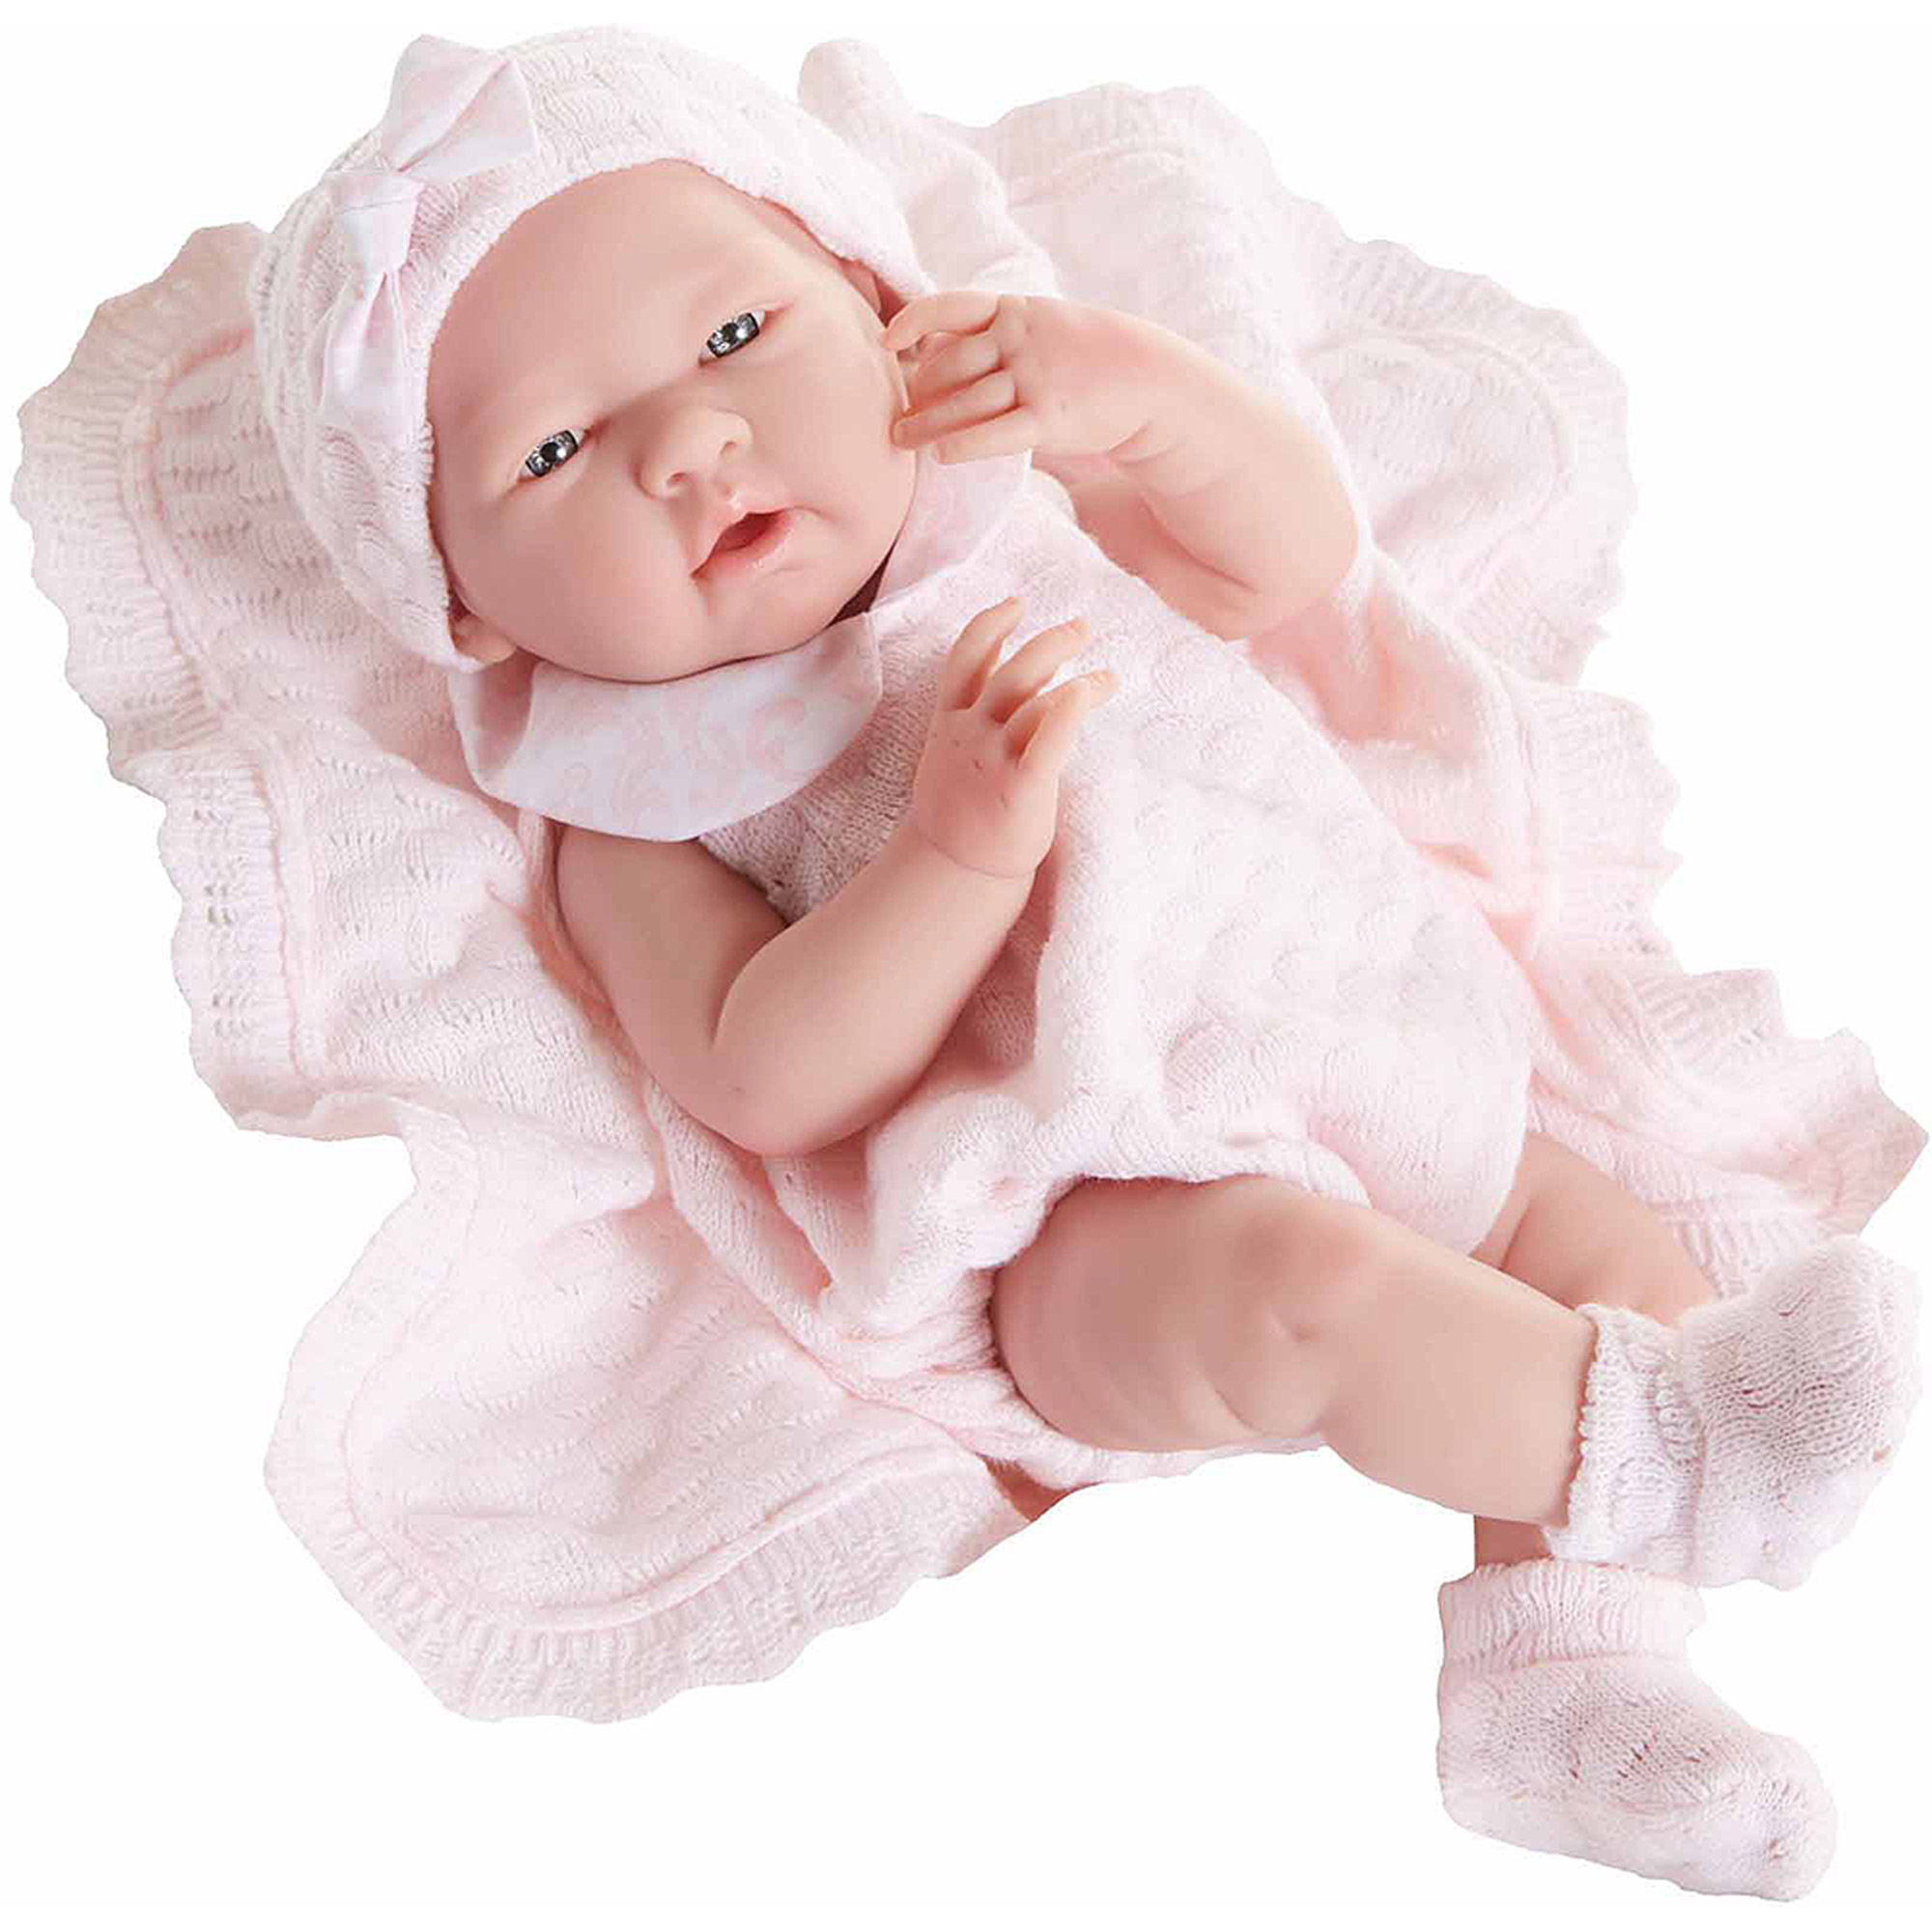 "La Newborn 15"" All-Vinyl Life-Like Baby Doll, Pretty Pink Boutique Knit Set, Real Girl"